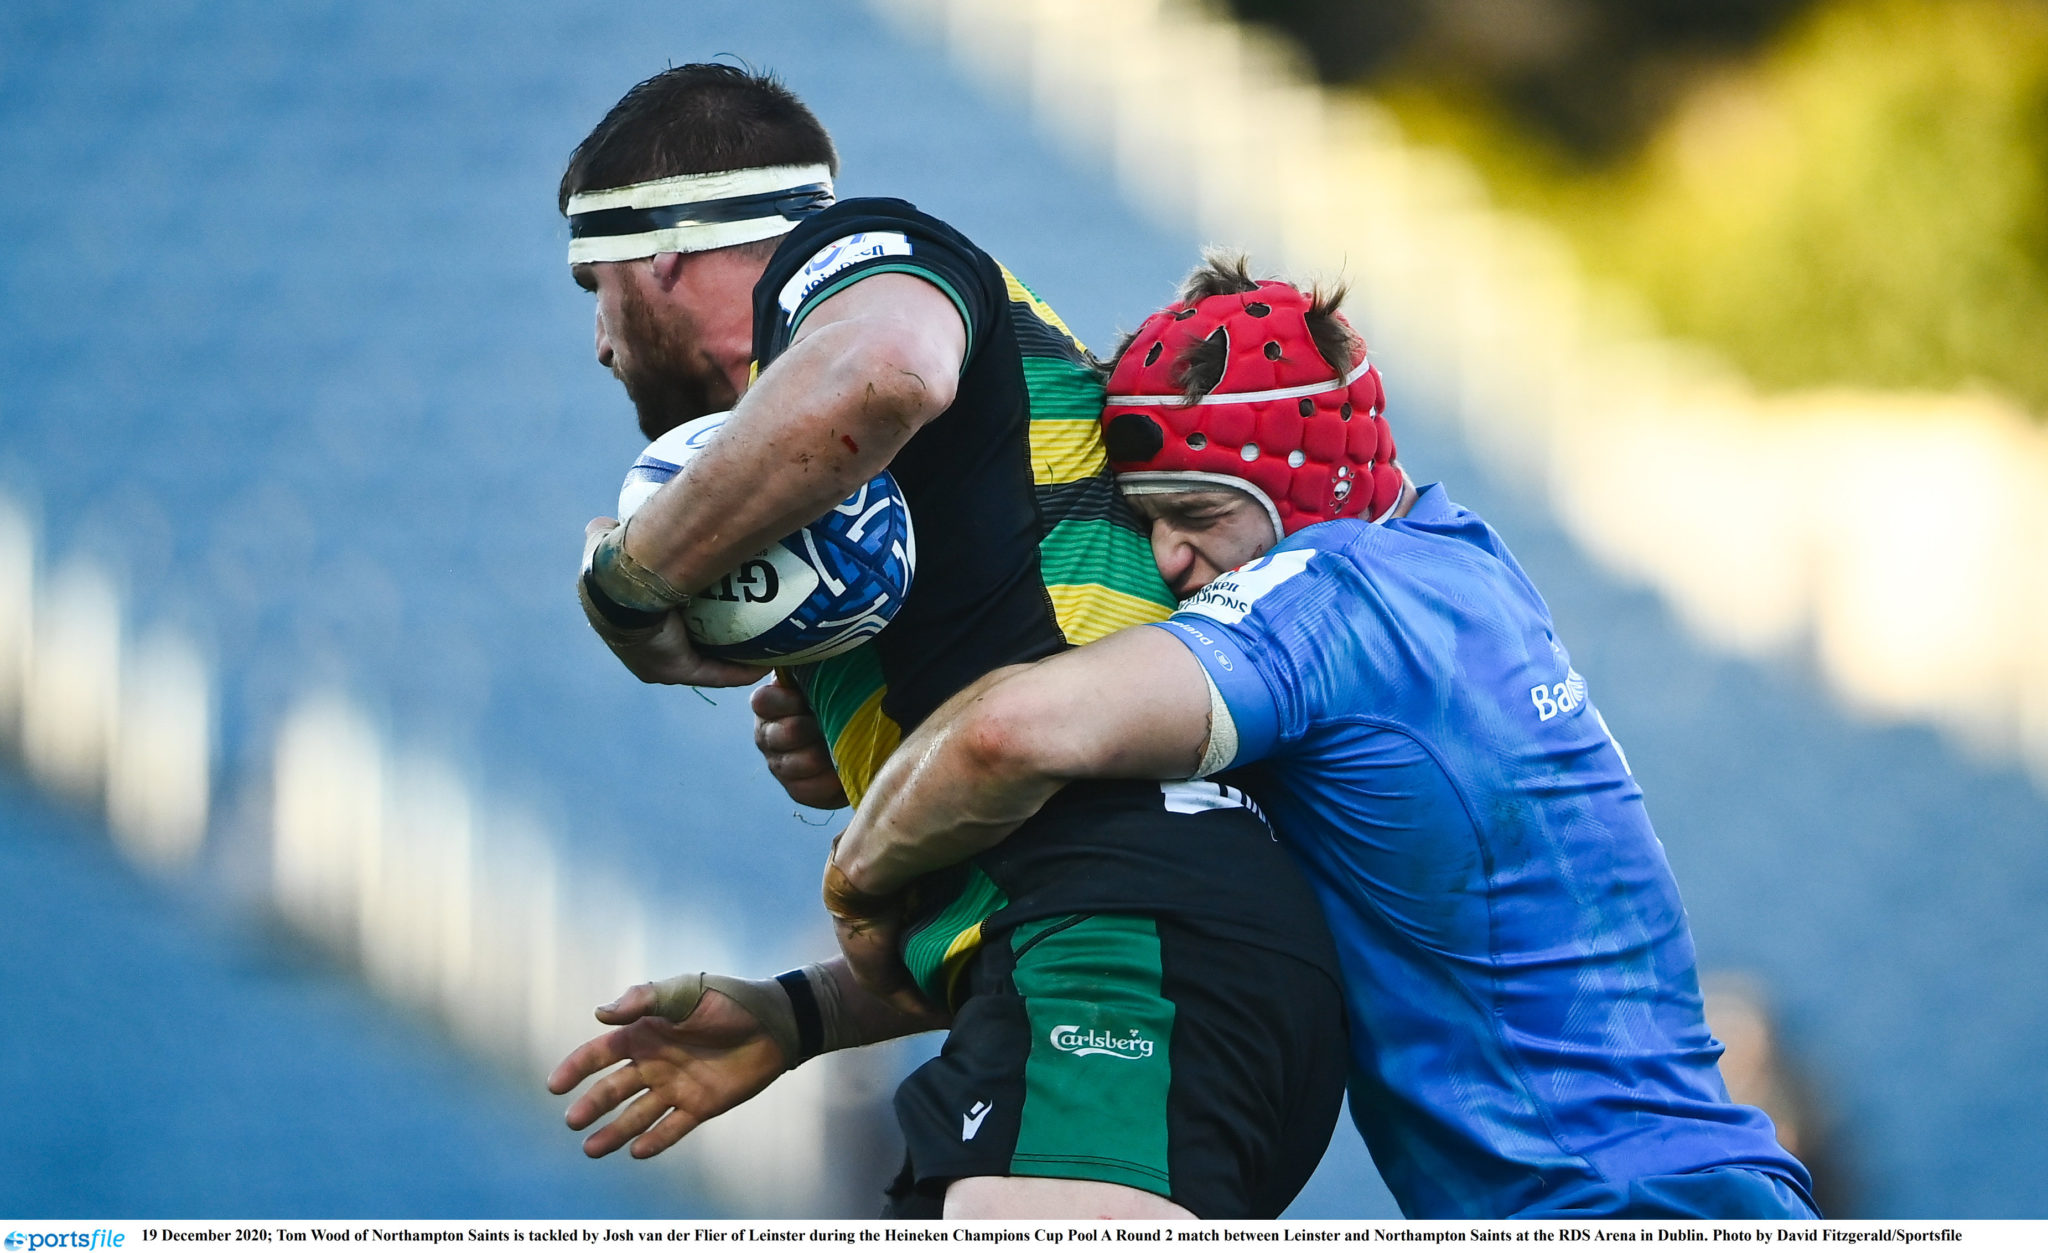 Rugby match between Leinster and Northampton